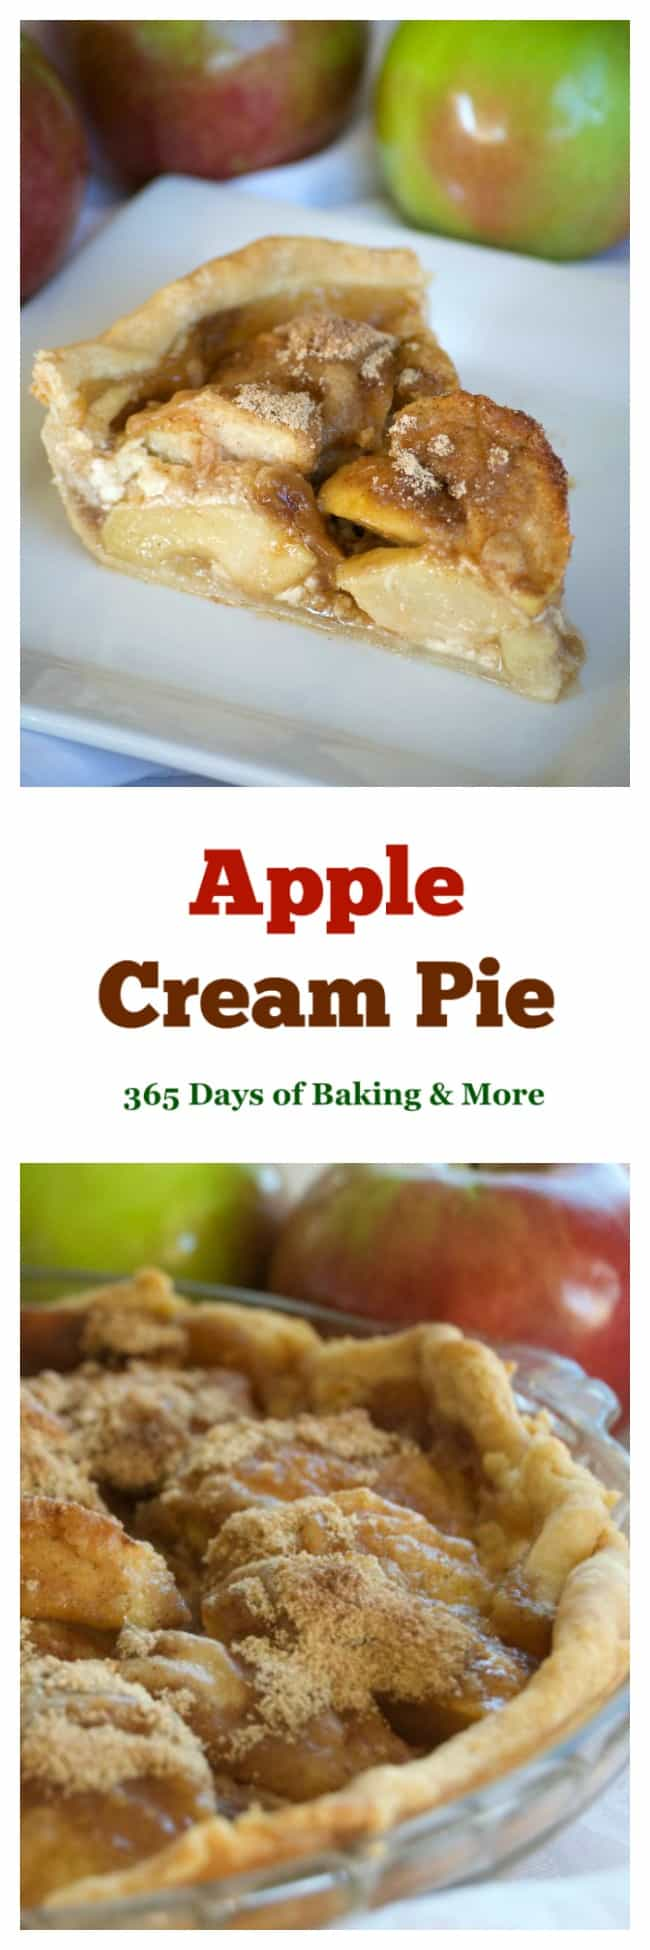 This Apple Cream Pie is a super easy and very delicious apple pie. Covered in cinnamon sugar and some heavy cream, it's sure to bring smiles all year round.